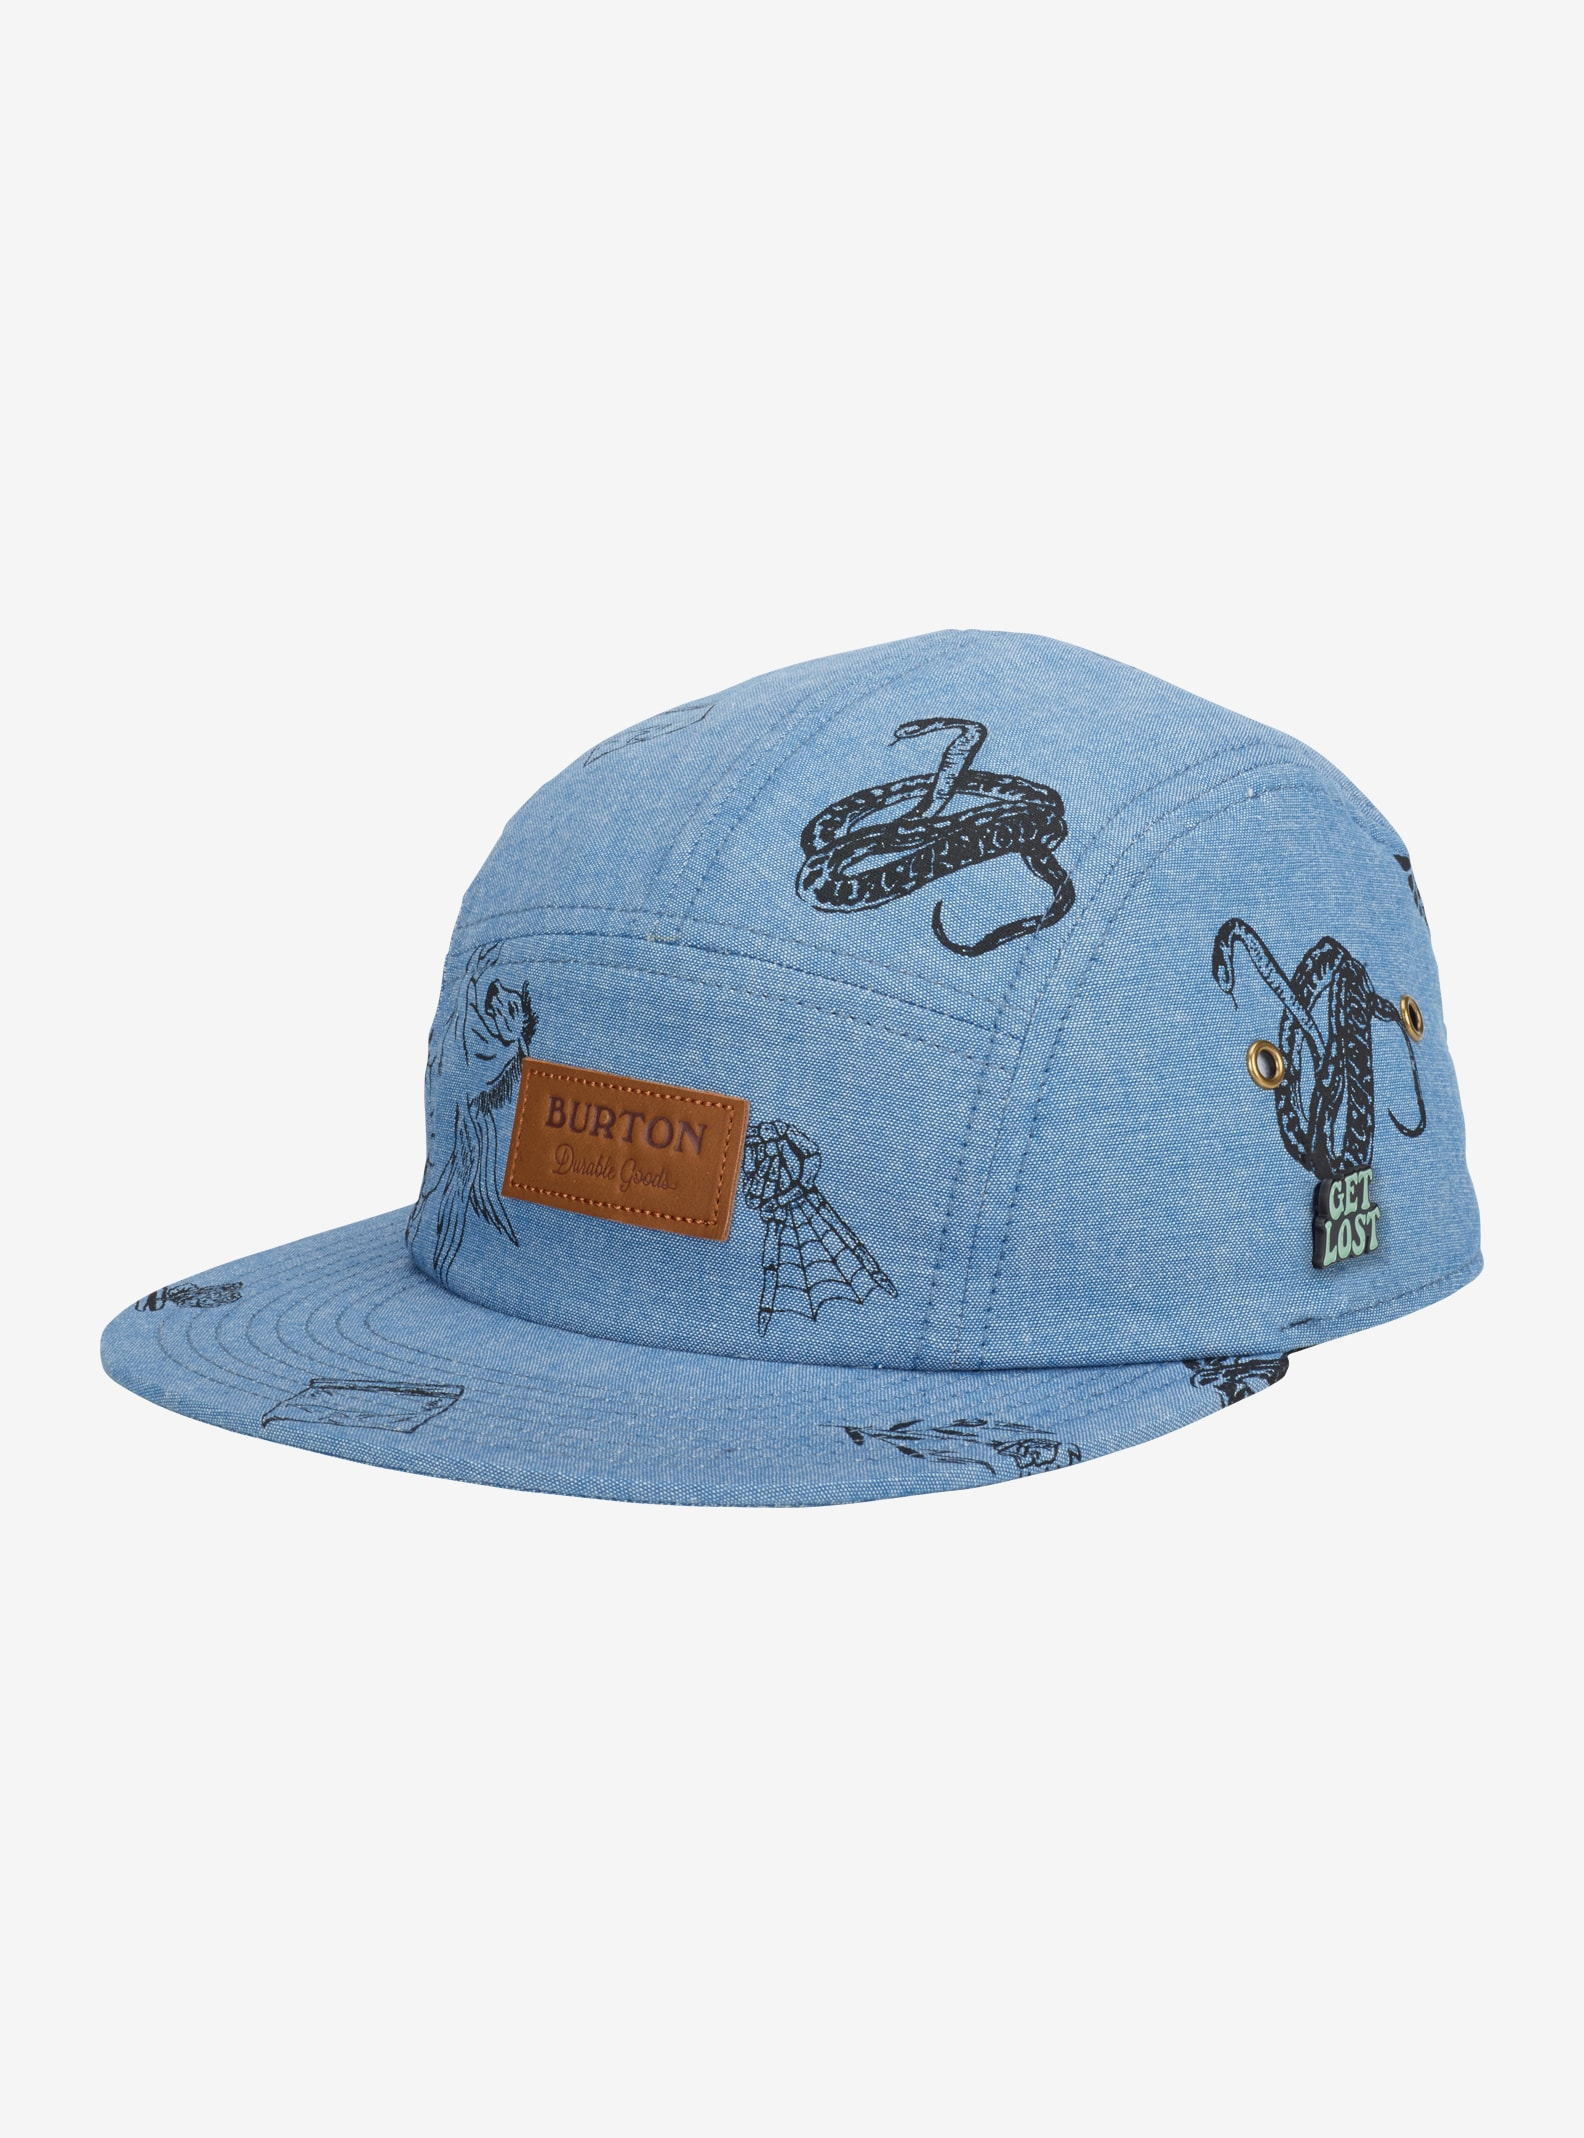 Burton Rainfly Hat shown in Chambray Freetime